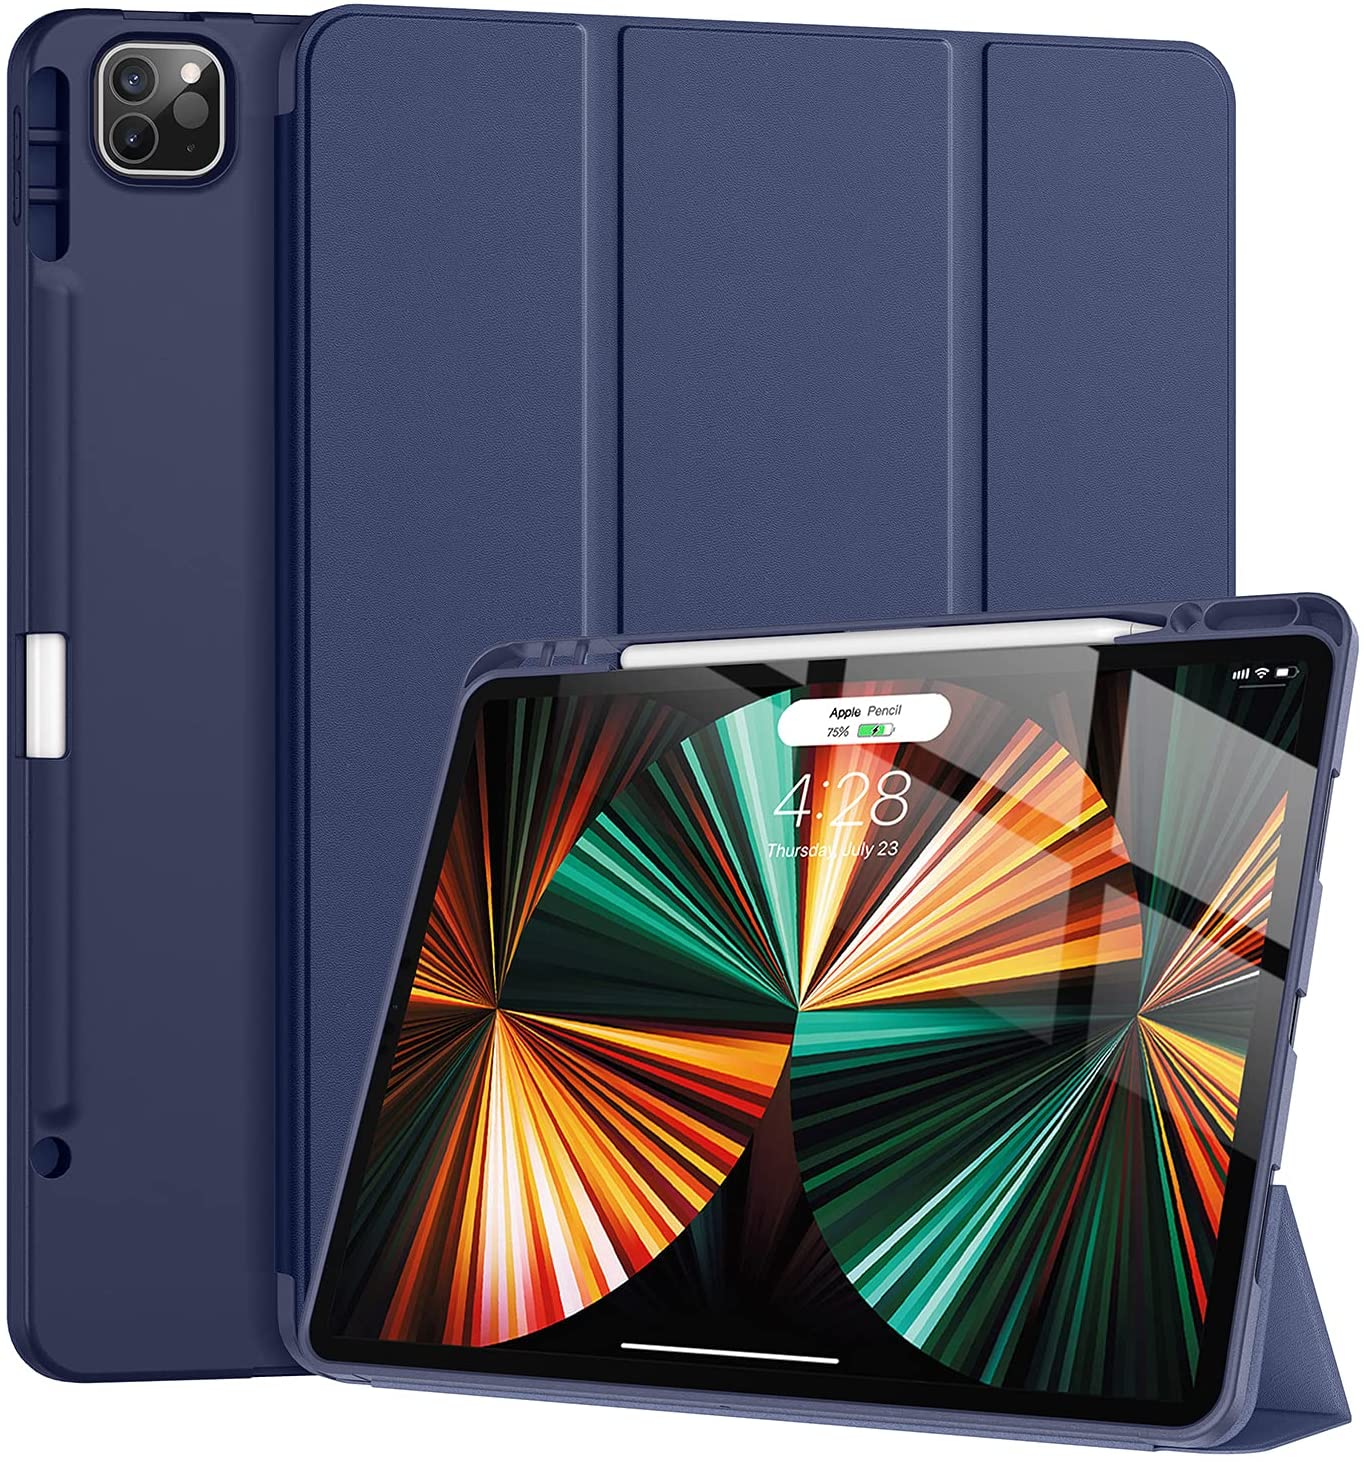 Tuosake iPad Pro 12.9 inch Case 2021 5th Generation with Pencil Holder,Slim Lightweight Trifold Stand Case【Pencil Charging+Auto Sleep/Wake】 Soft TPU Back Cover for iPad Pro 12.9 2021-Dark Blue